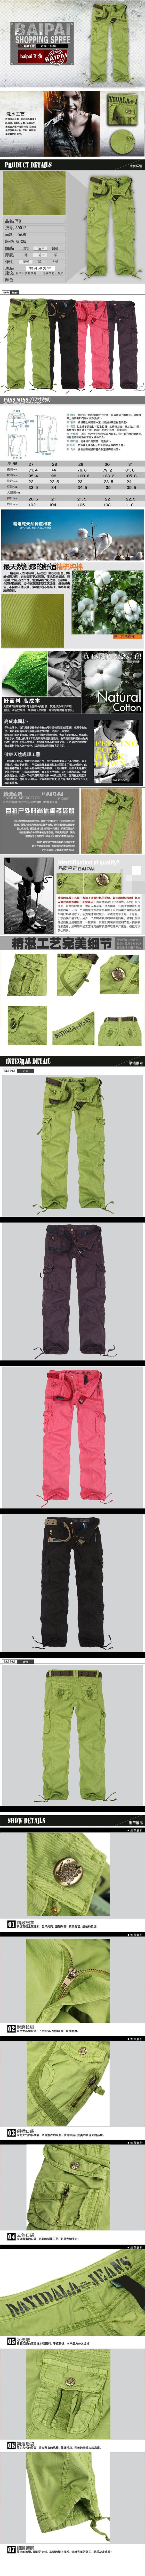 Free shipping, $25.47/Pieza:buy wholesale Ropa de Mujer Moda Mujer Pantalones de Cargo Verde Hip Hop Dance Harem Pantalones Pantalones de Sudor Girls Pantalones Baggy Casual 9012 from DHgate.com,get worldwide delivery and buyer protection service.